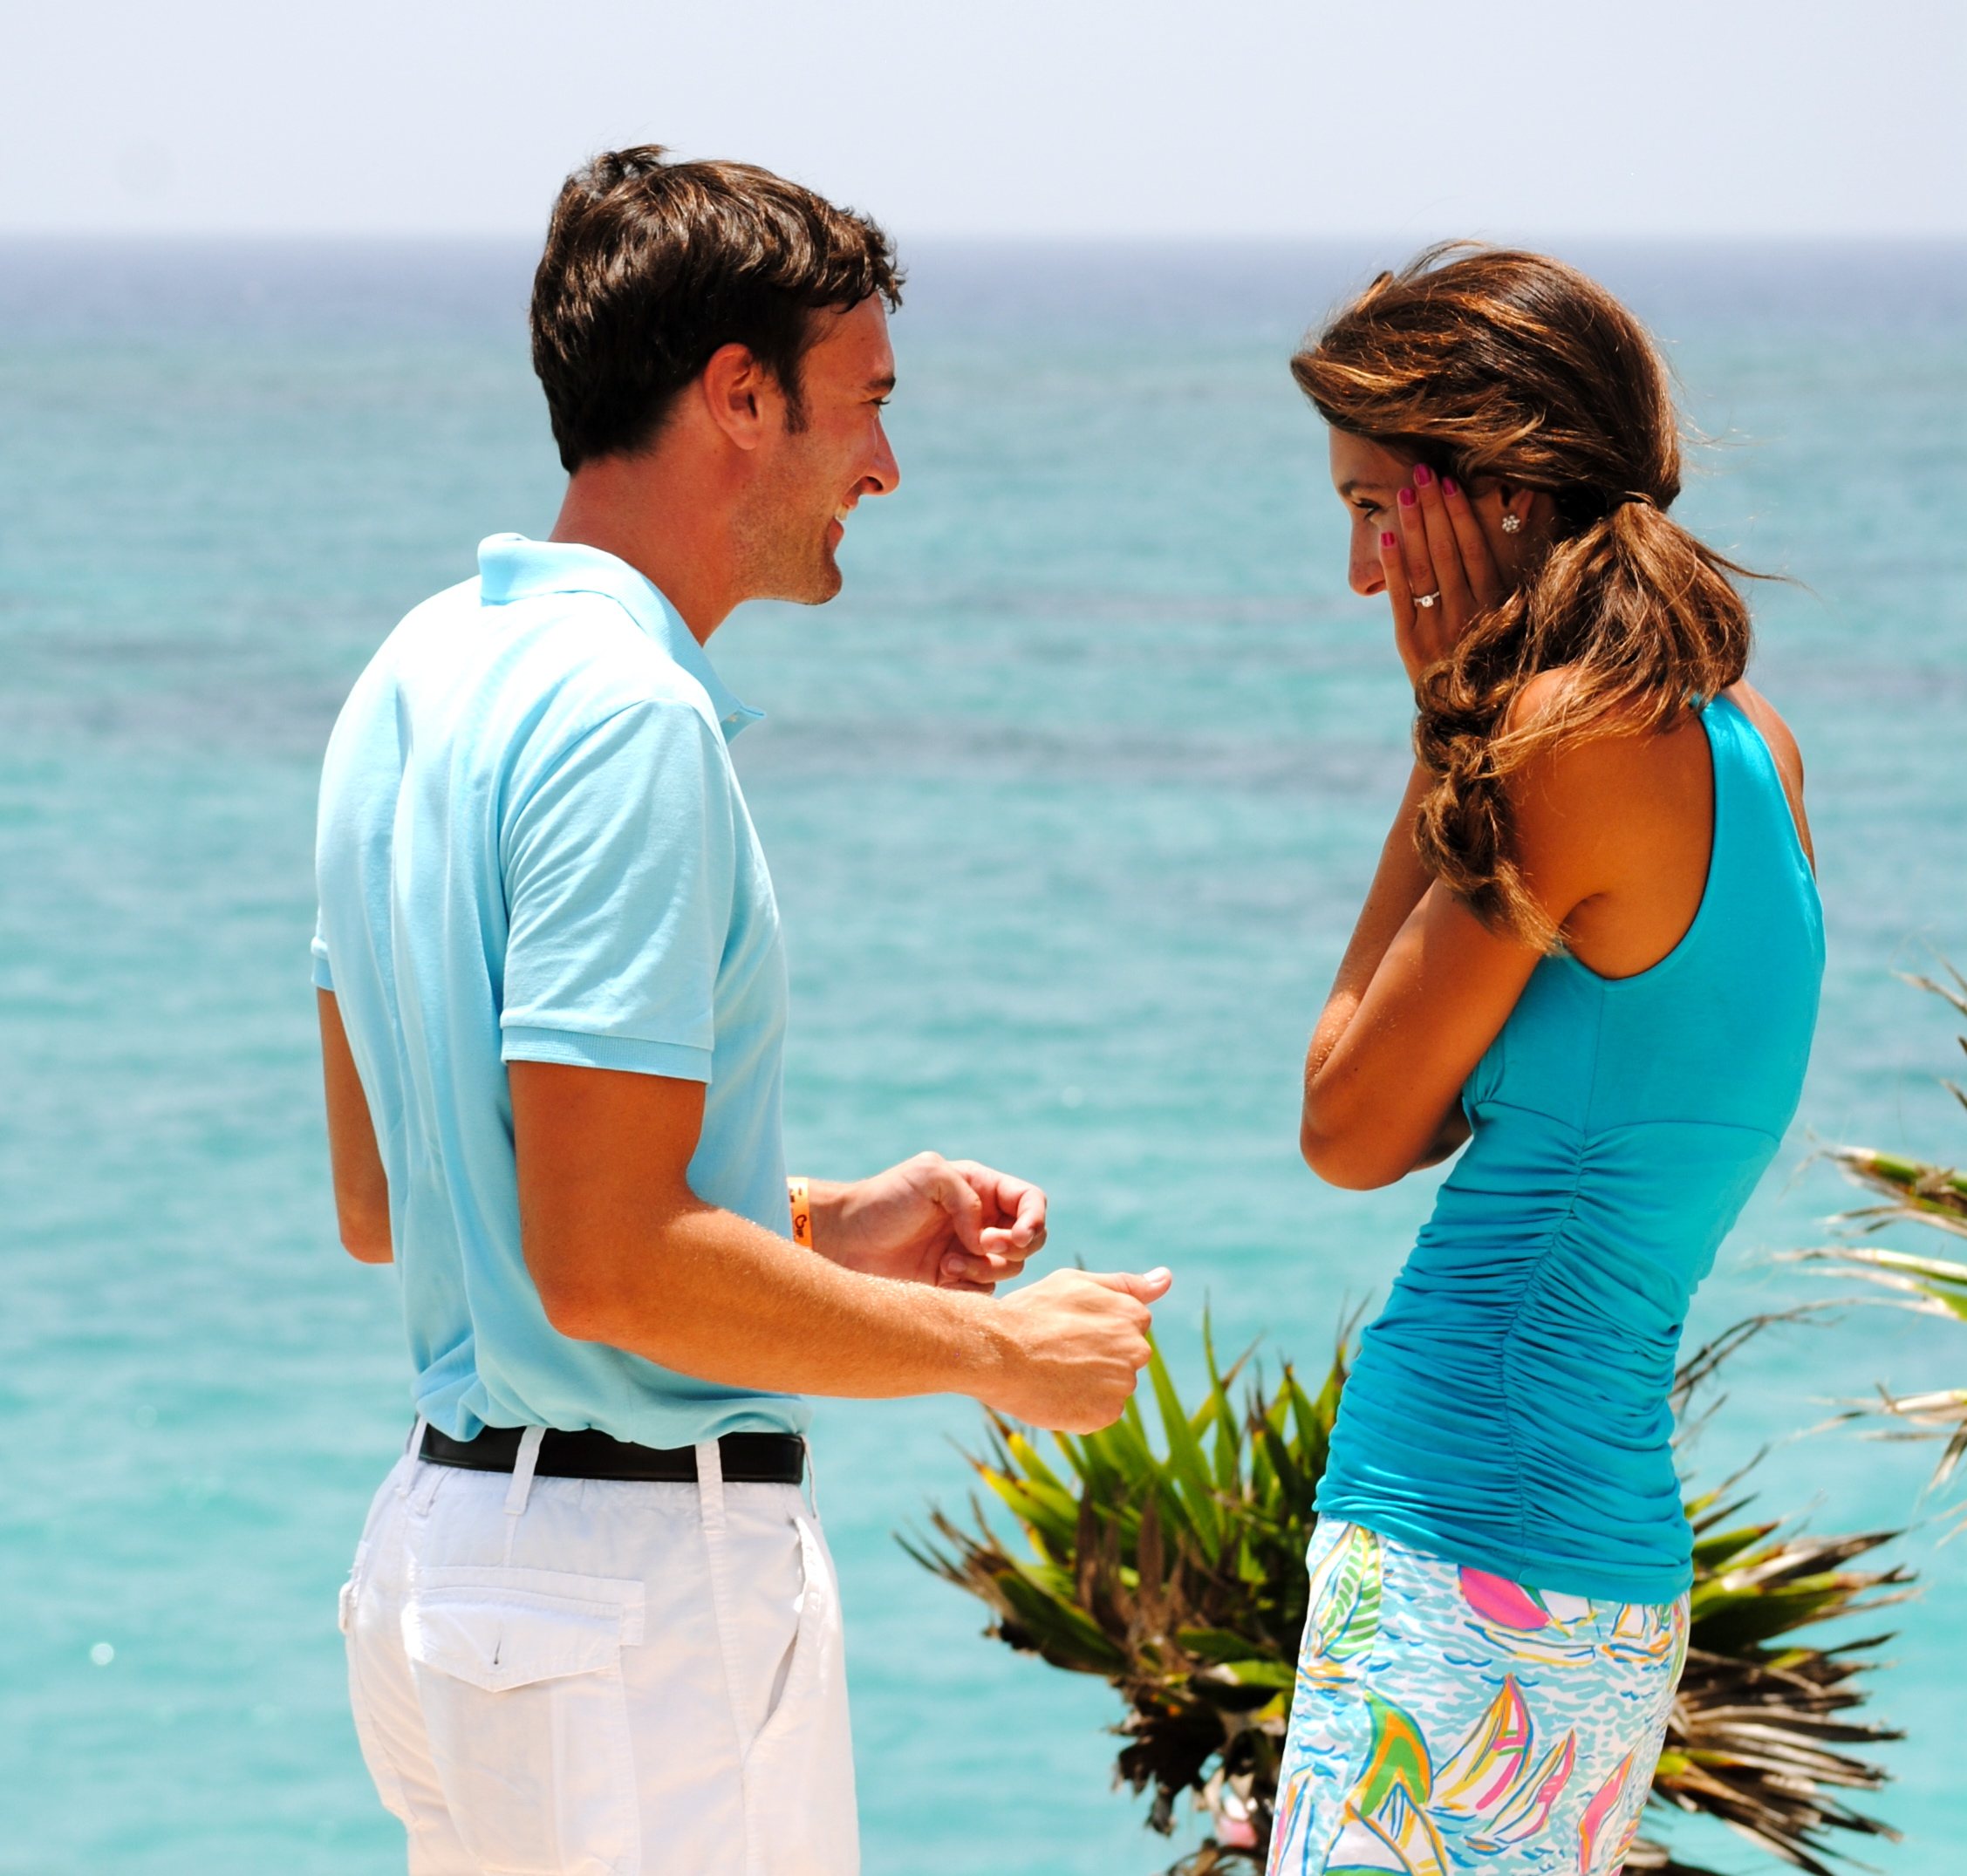 Image 5 of Lindsey and Mark | College Sweethearts